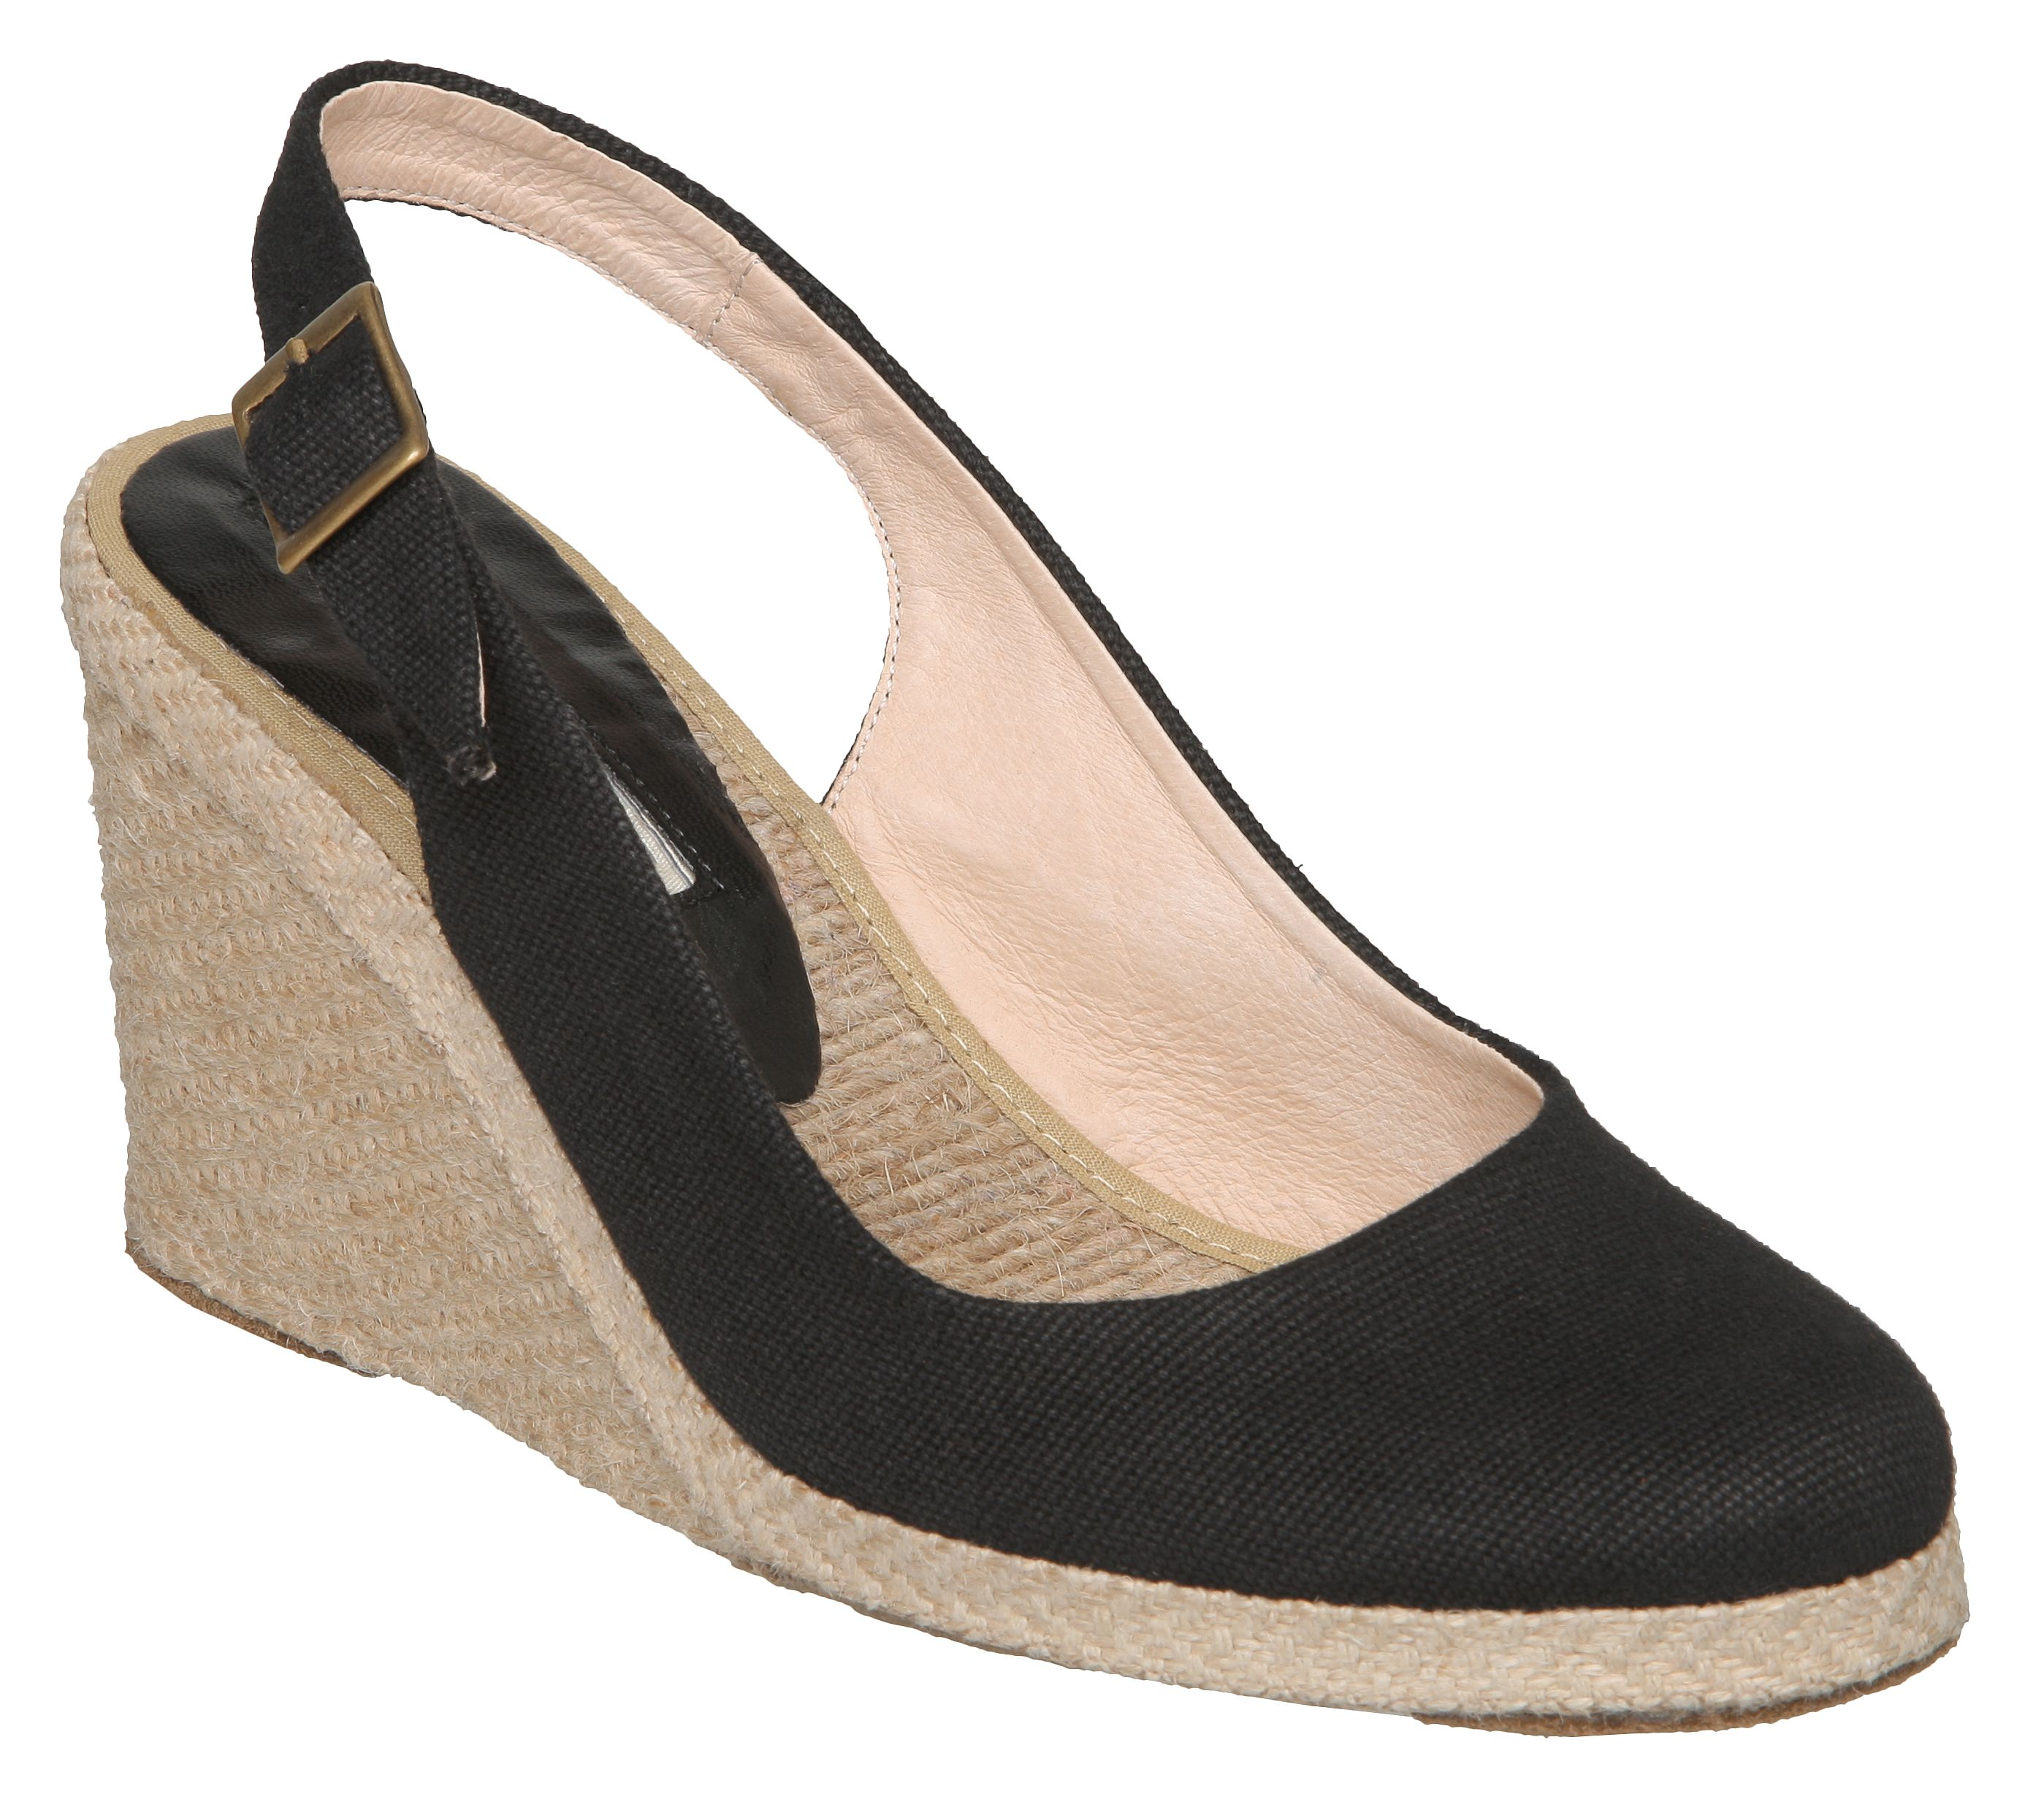 Imperia simple slingback espadrille courts